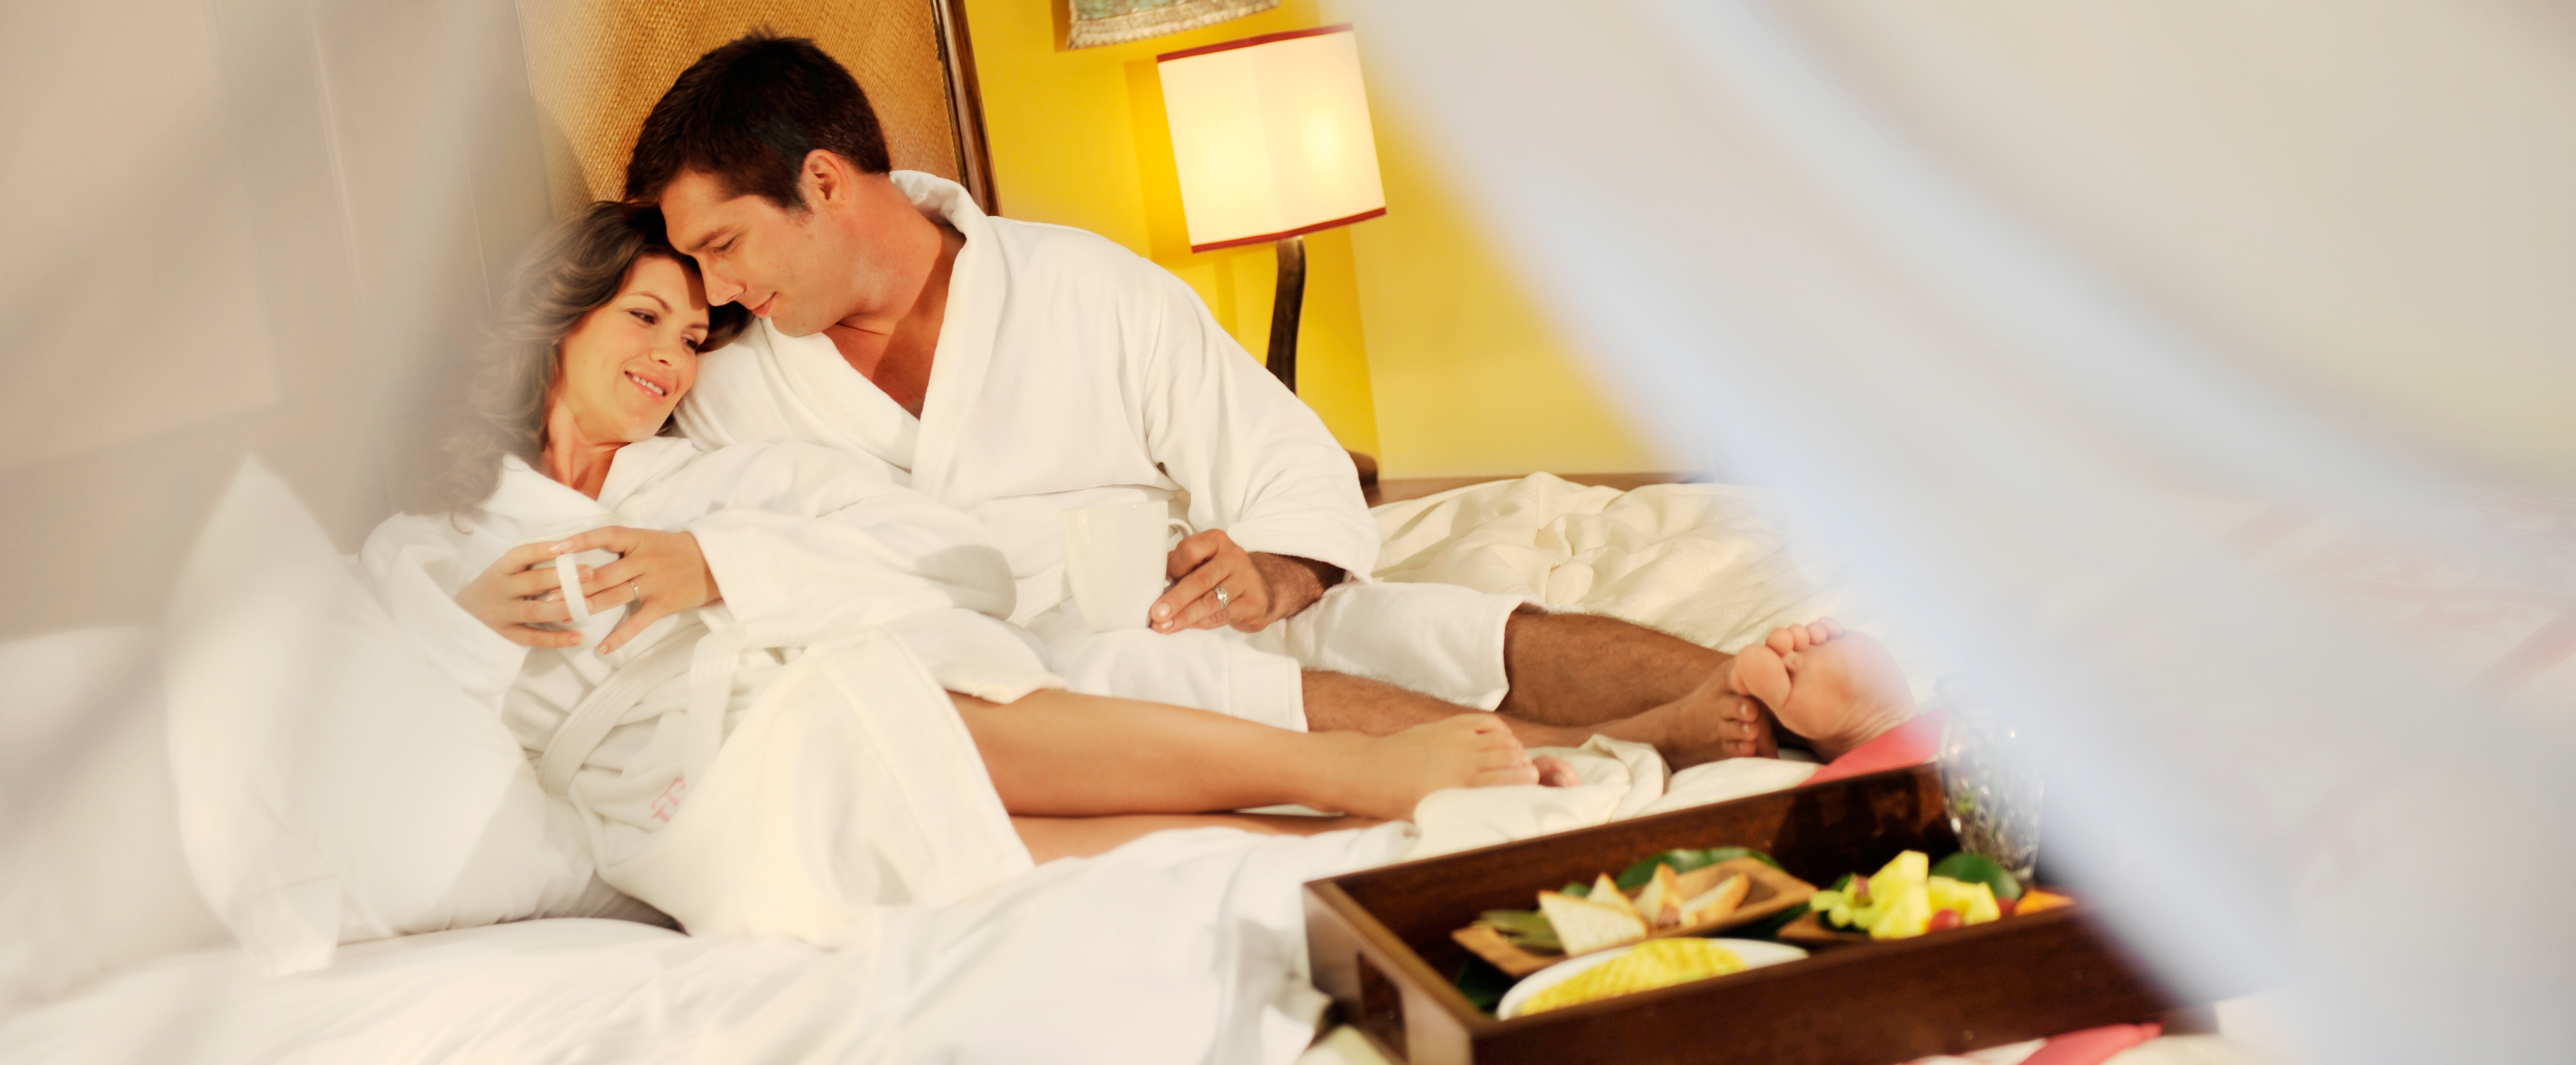 A couple unwinds in bed with room service